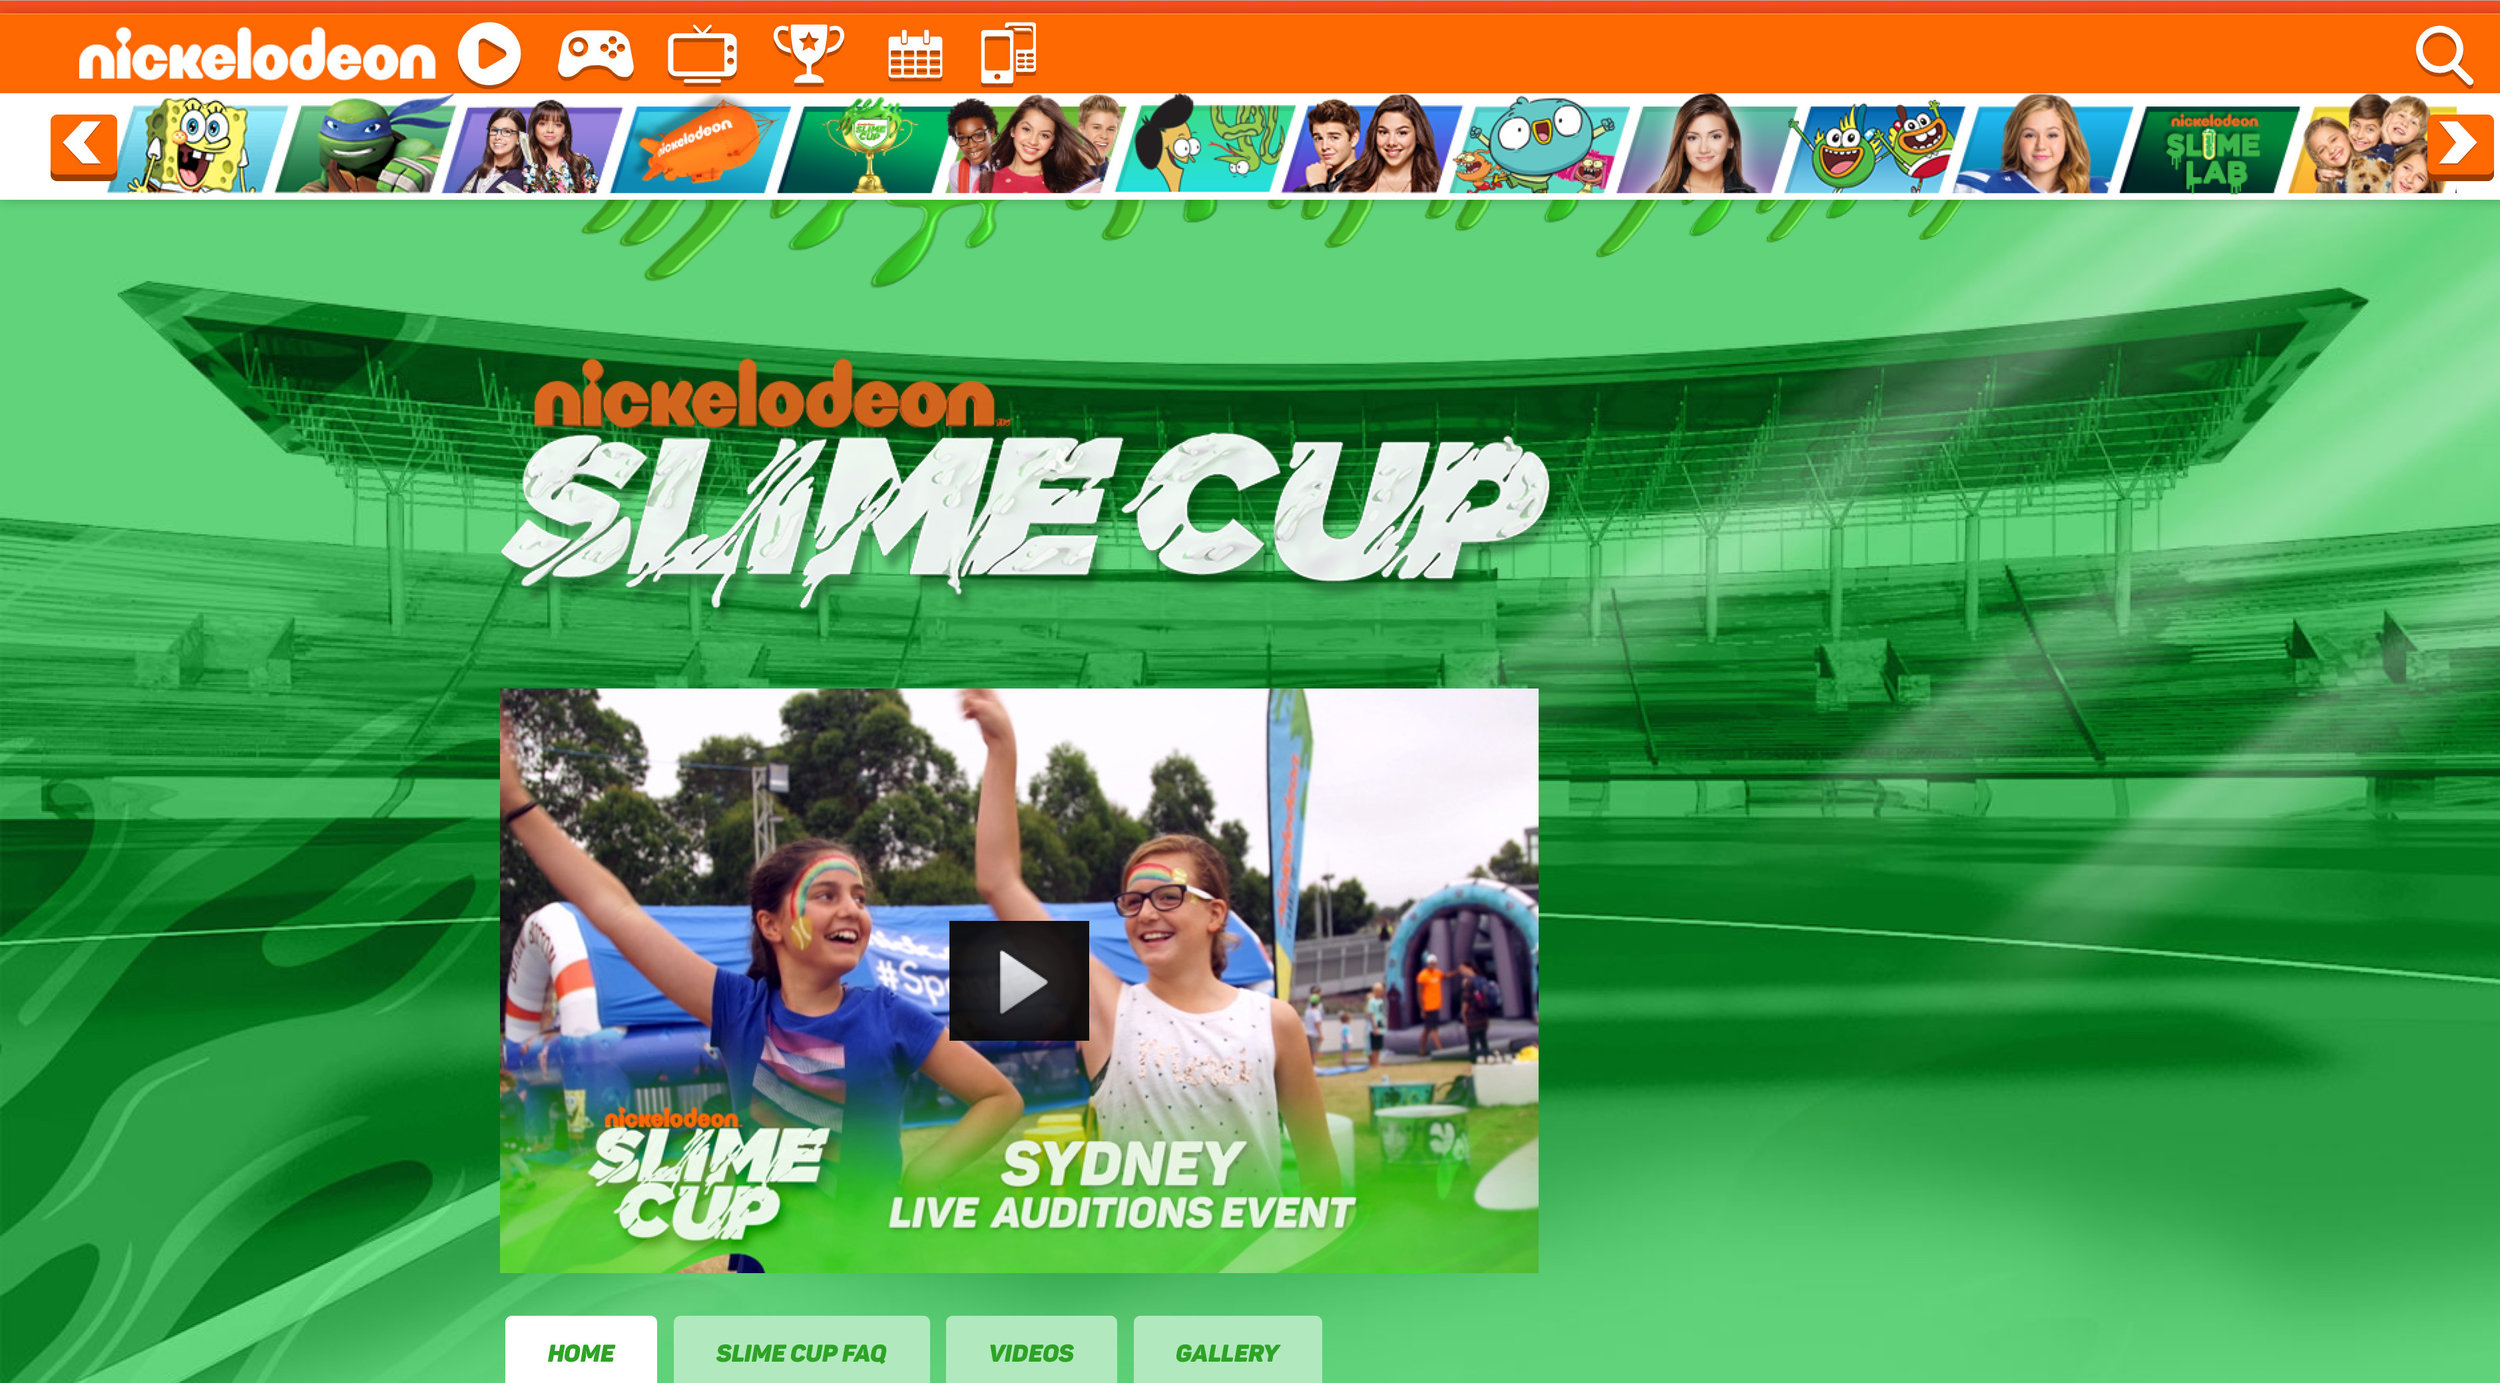 Design style frame 01 for Nickelodeon Slime Cup Website